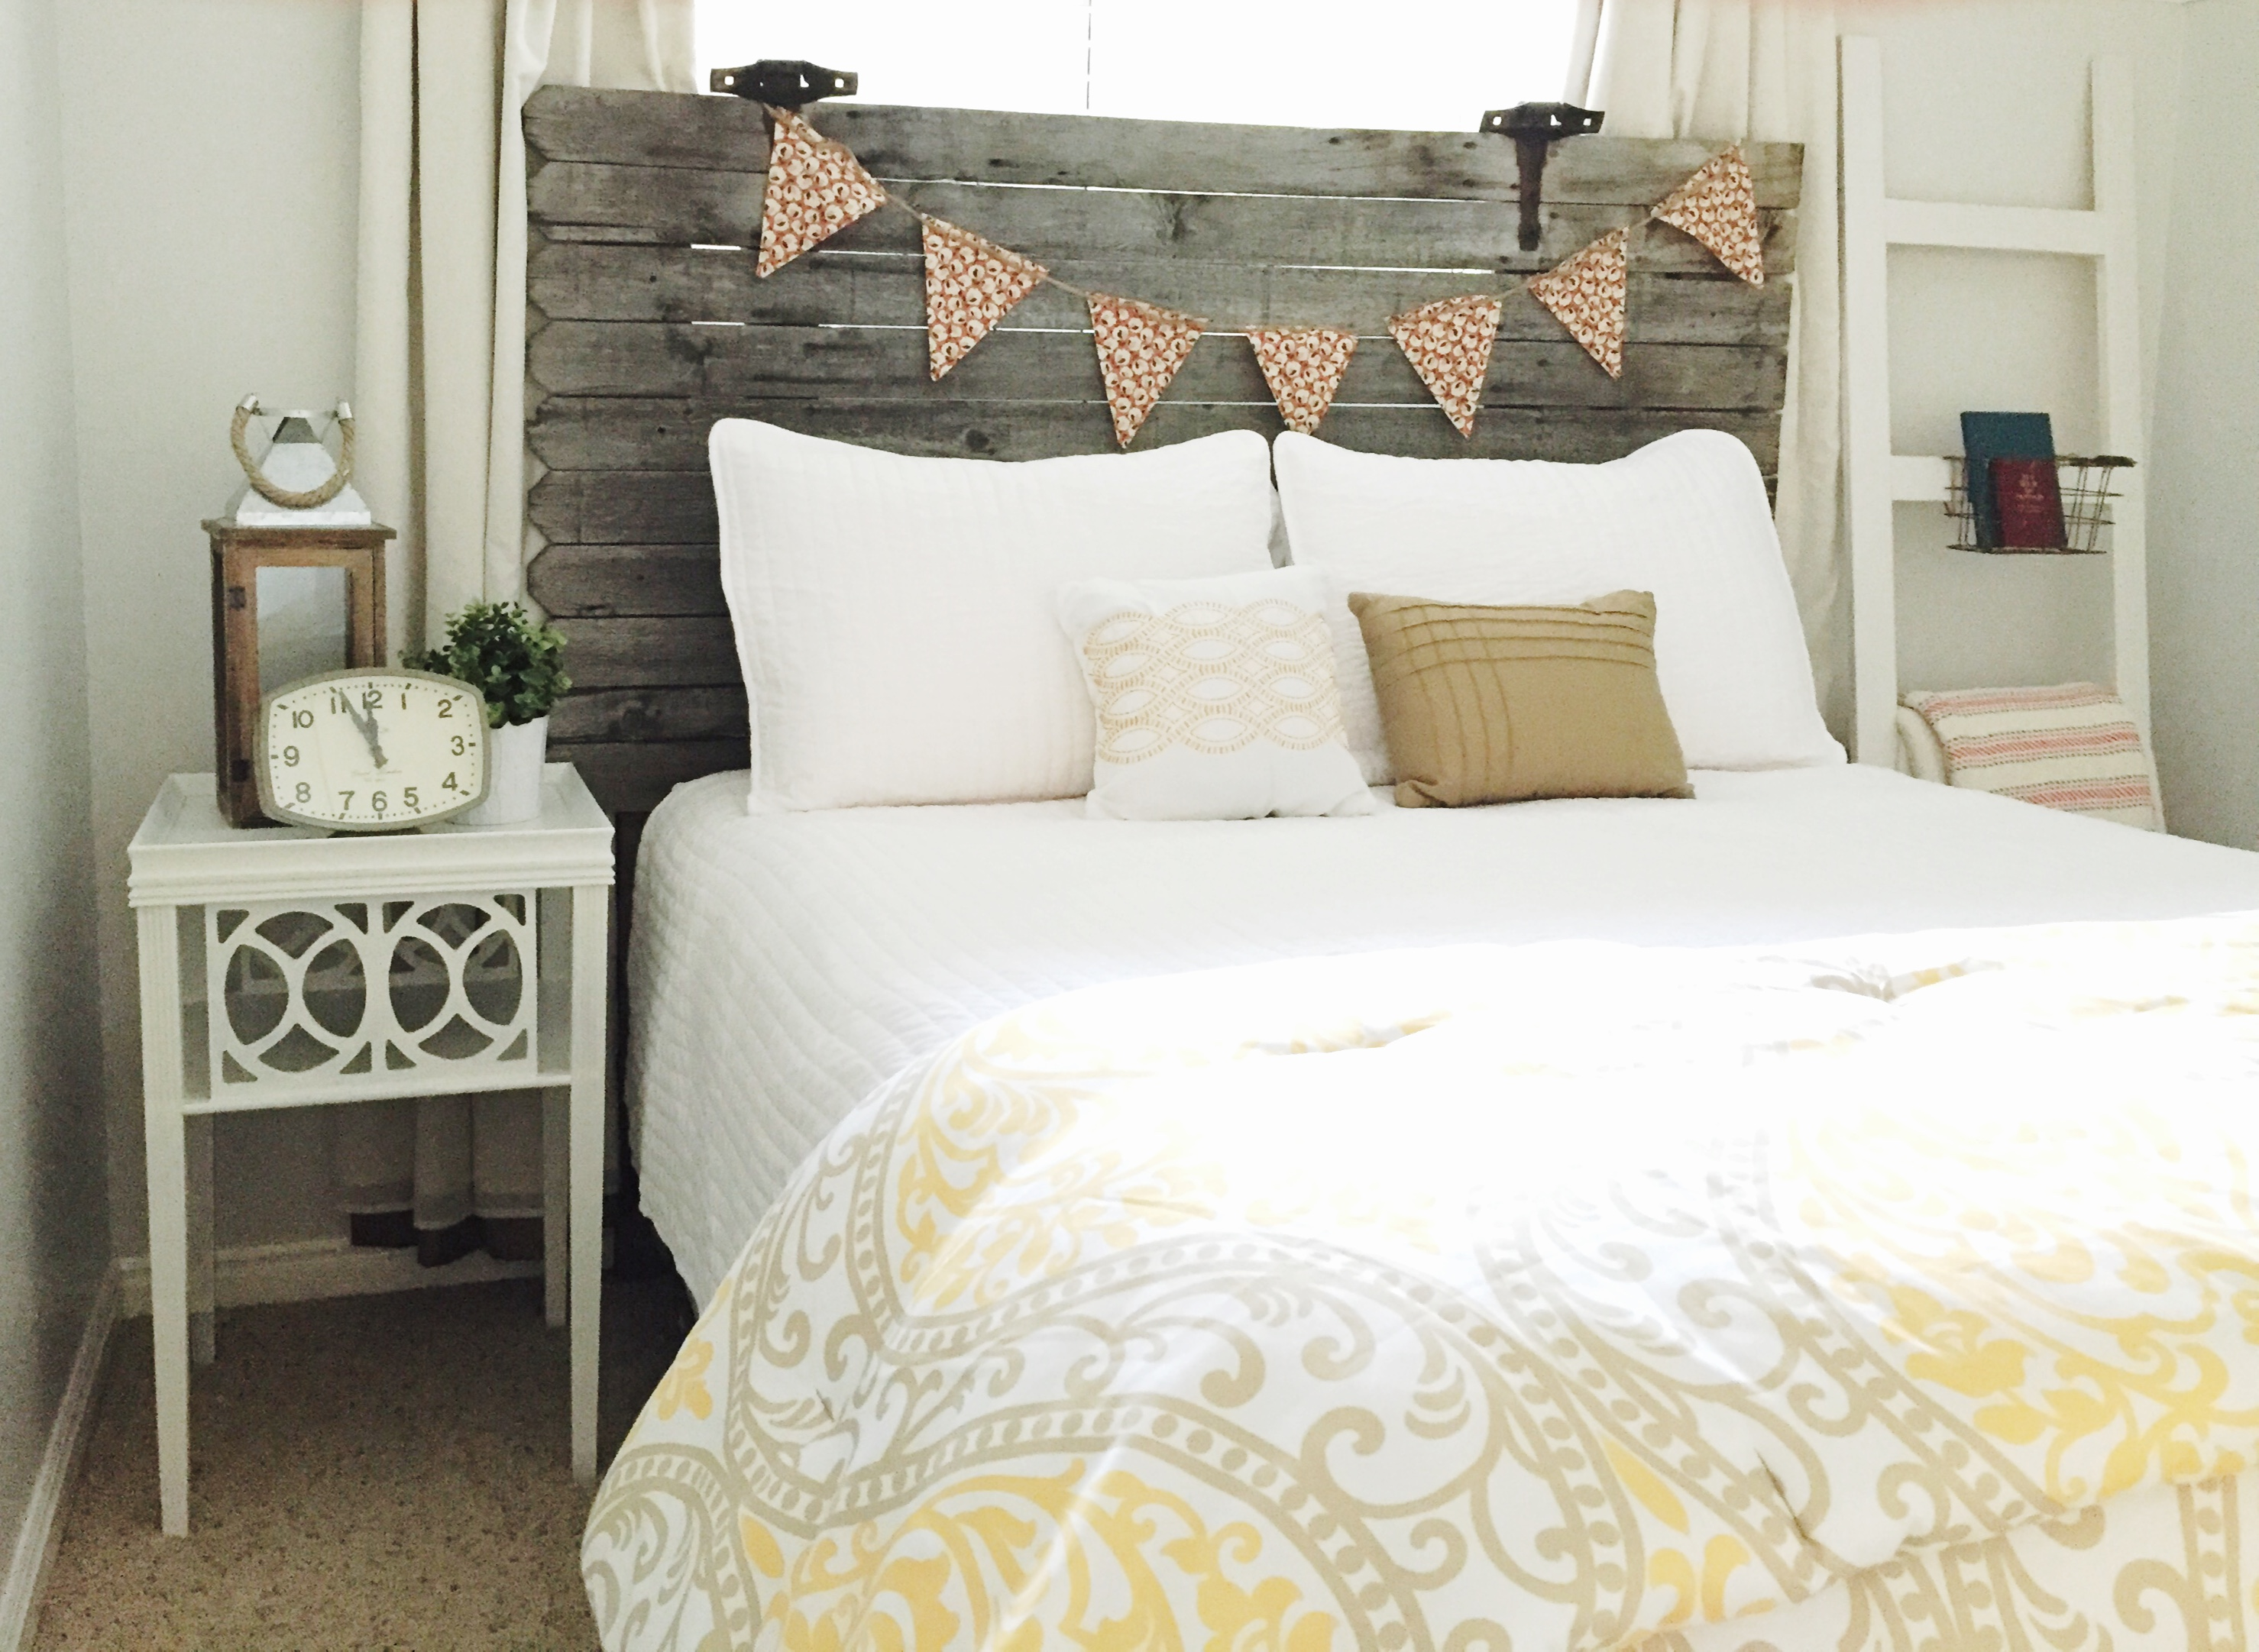 Turn A Fence Gate Into A Headboard The Schmidt Home